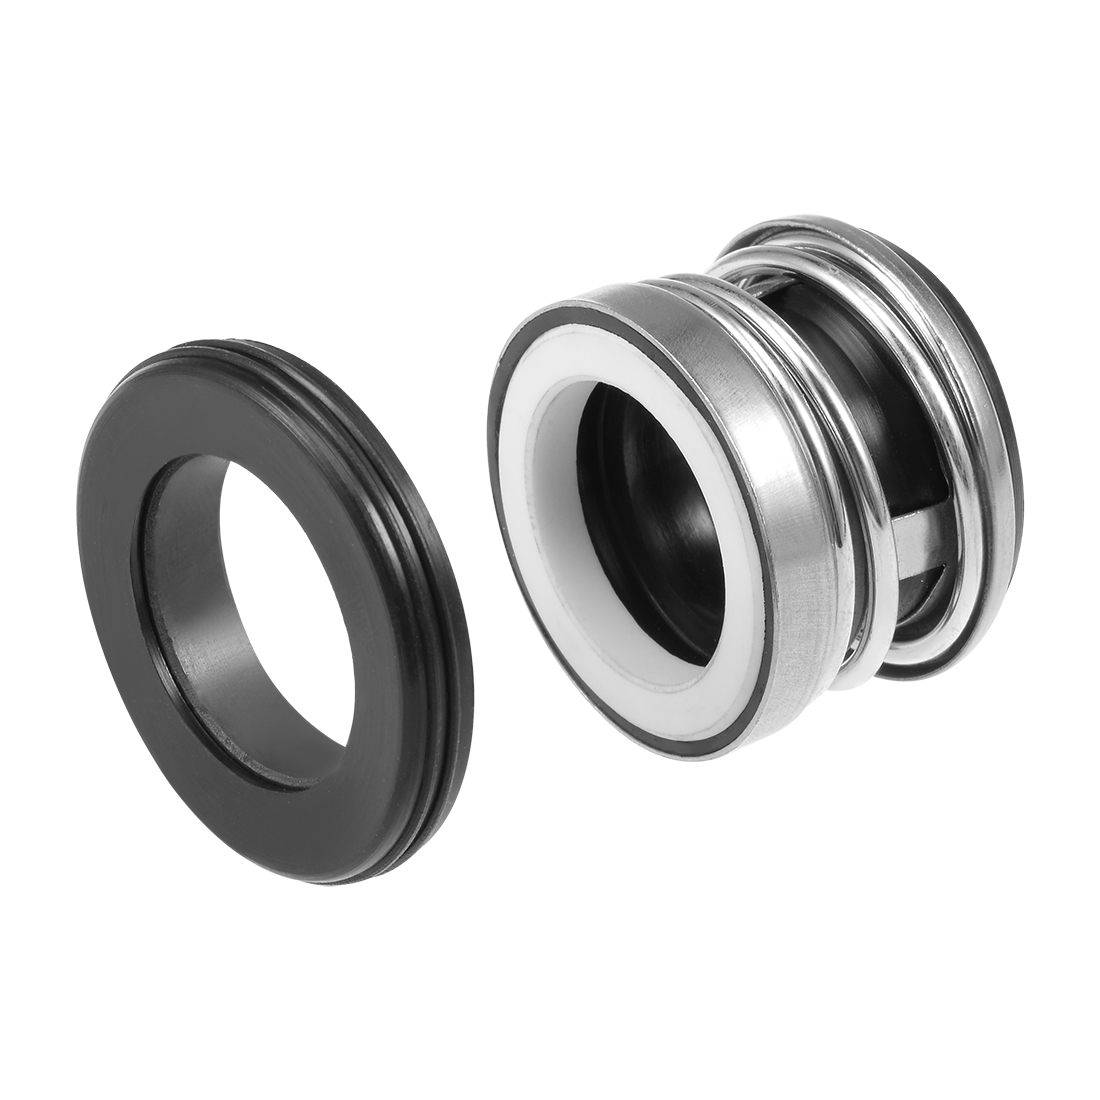 Mechanical Shaft Seal Replacement for Pool Spa Pump 2pcs 104-19 - image 1 of 4